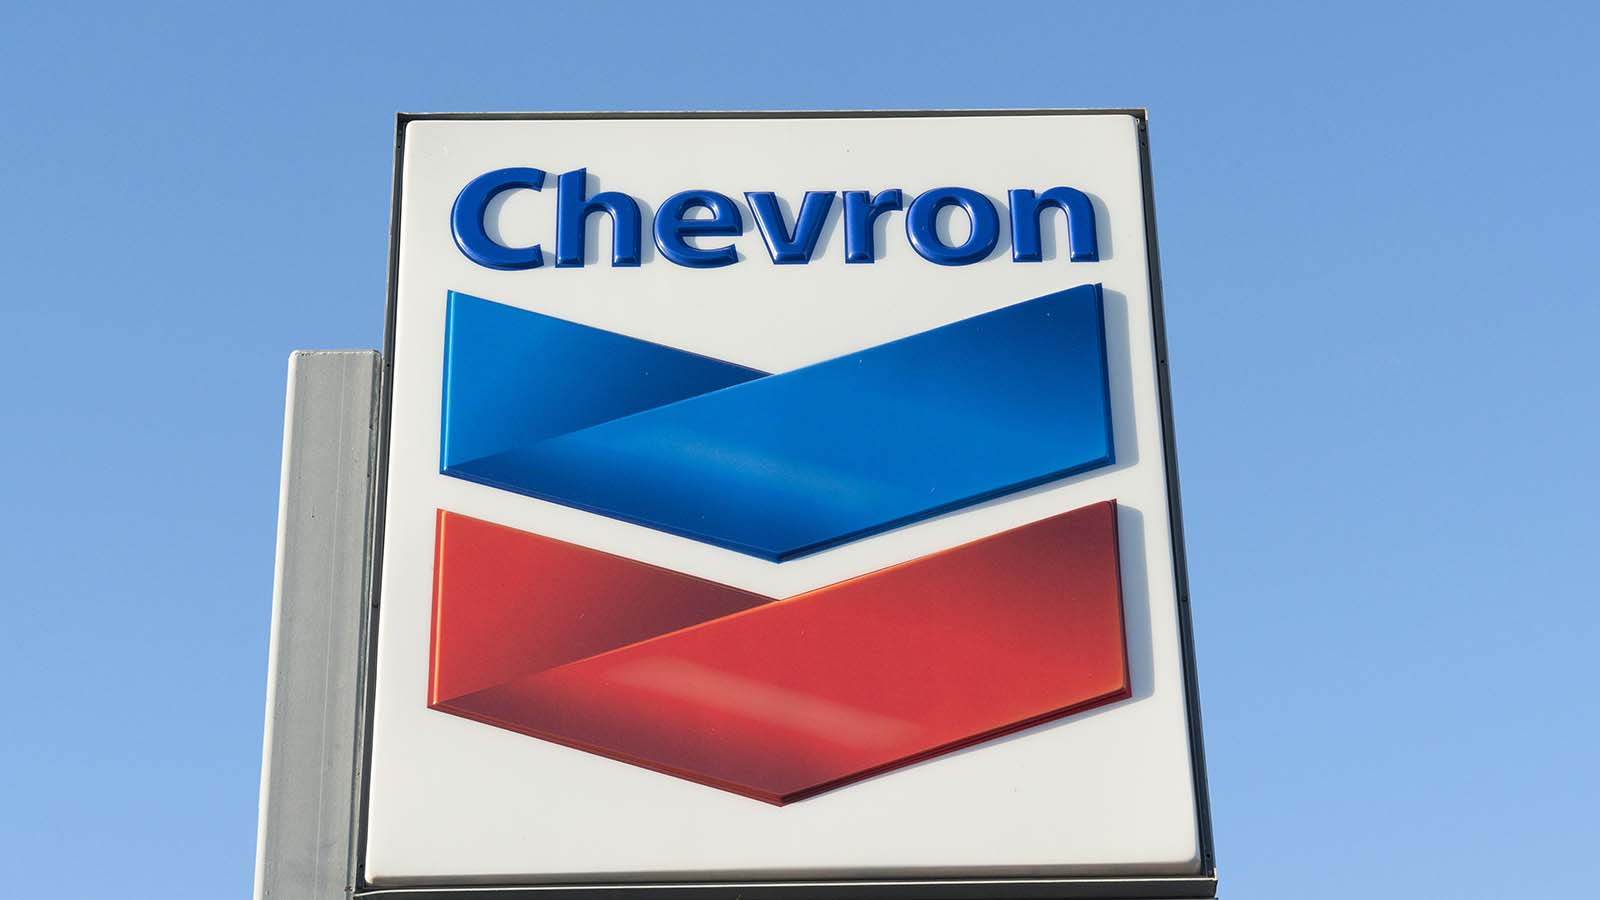 Don't Buy Chevron Stock Just For This Year's Dividend ...